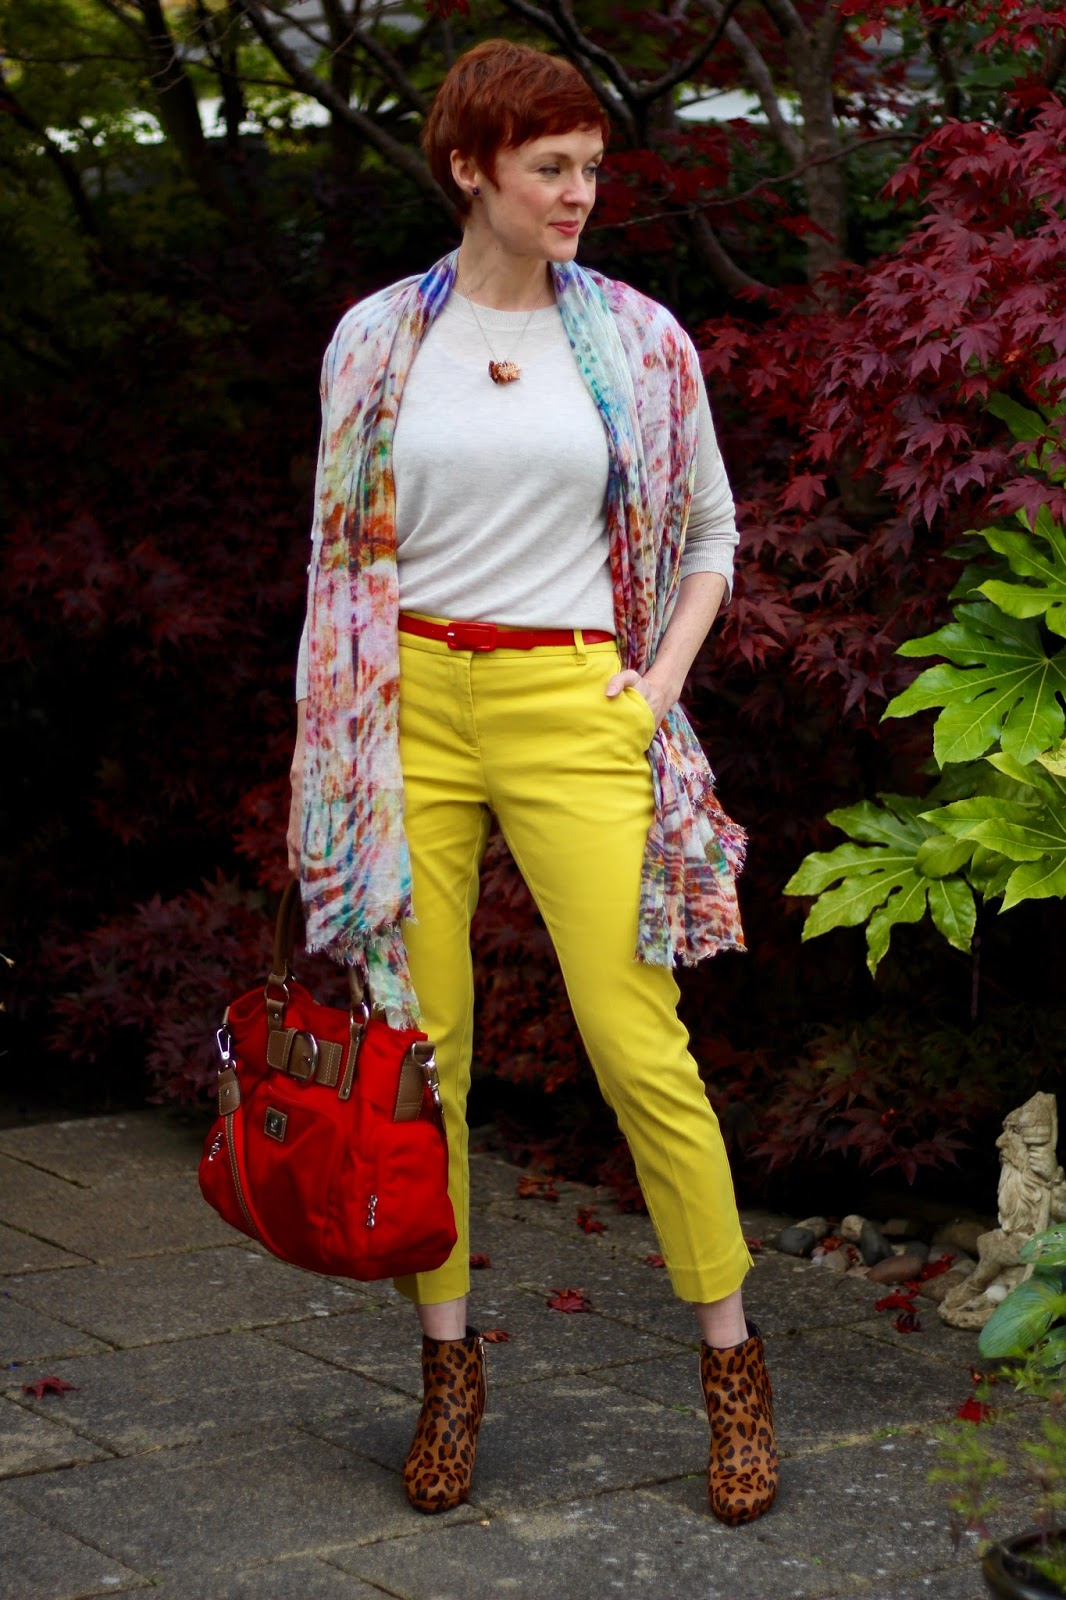 Yellow Trousers in Autumn, with Leopard Boots & Red | Over 40 | Fake Fabulous